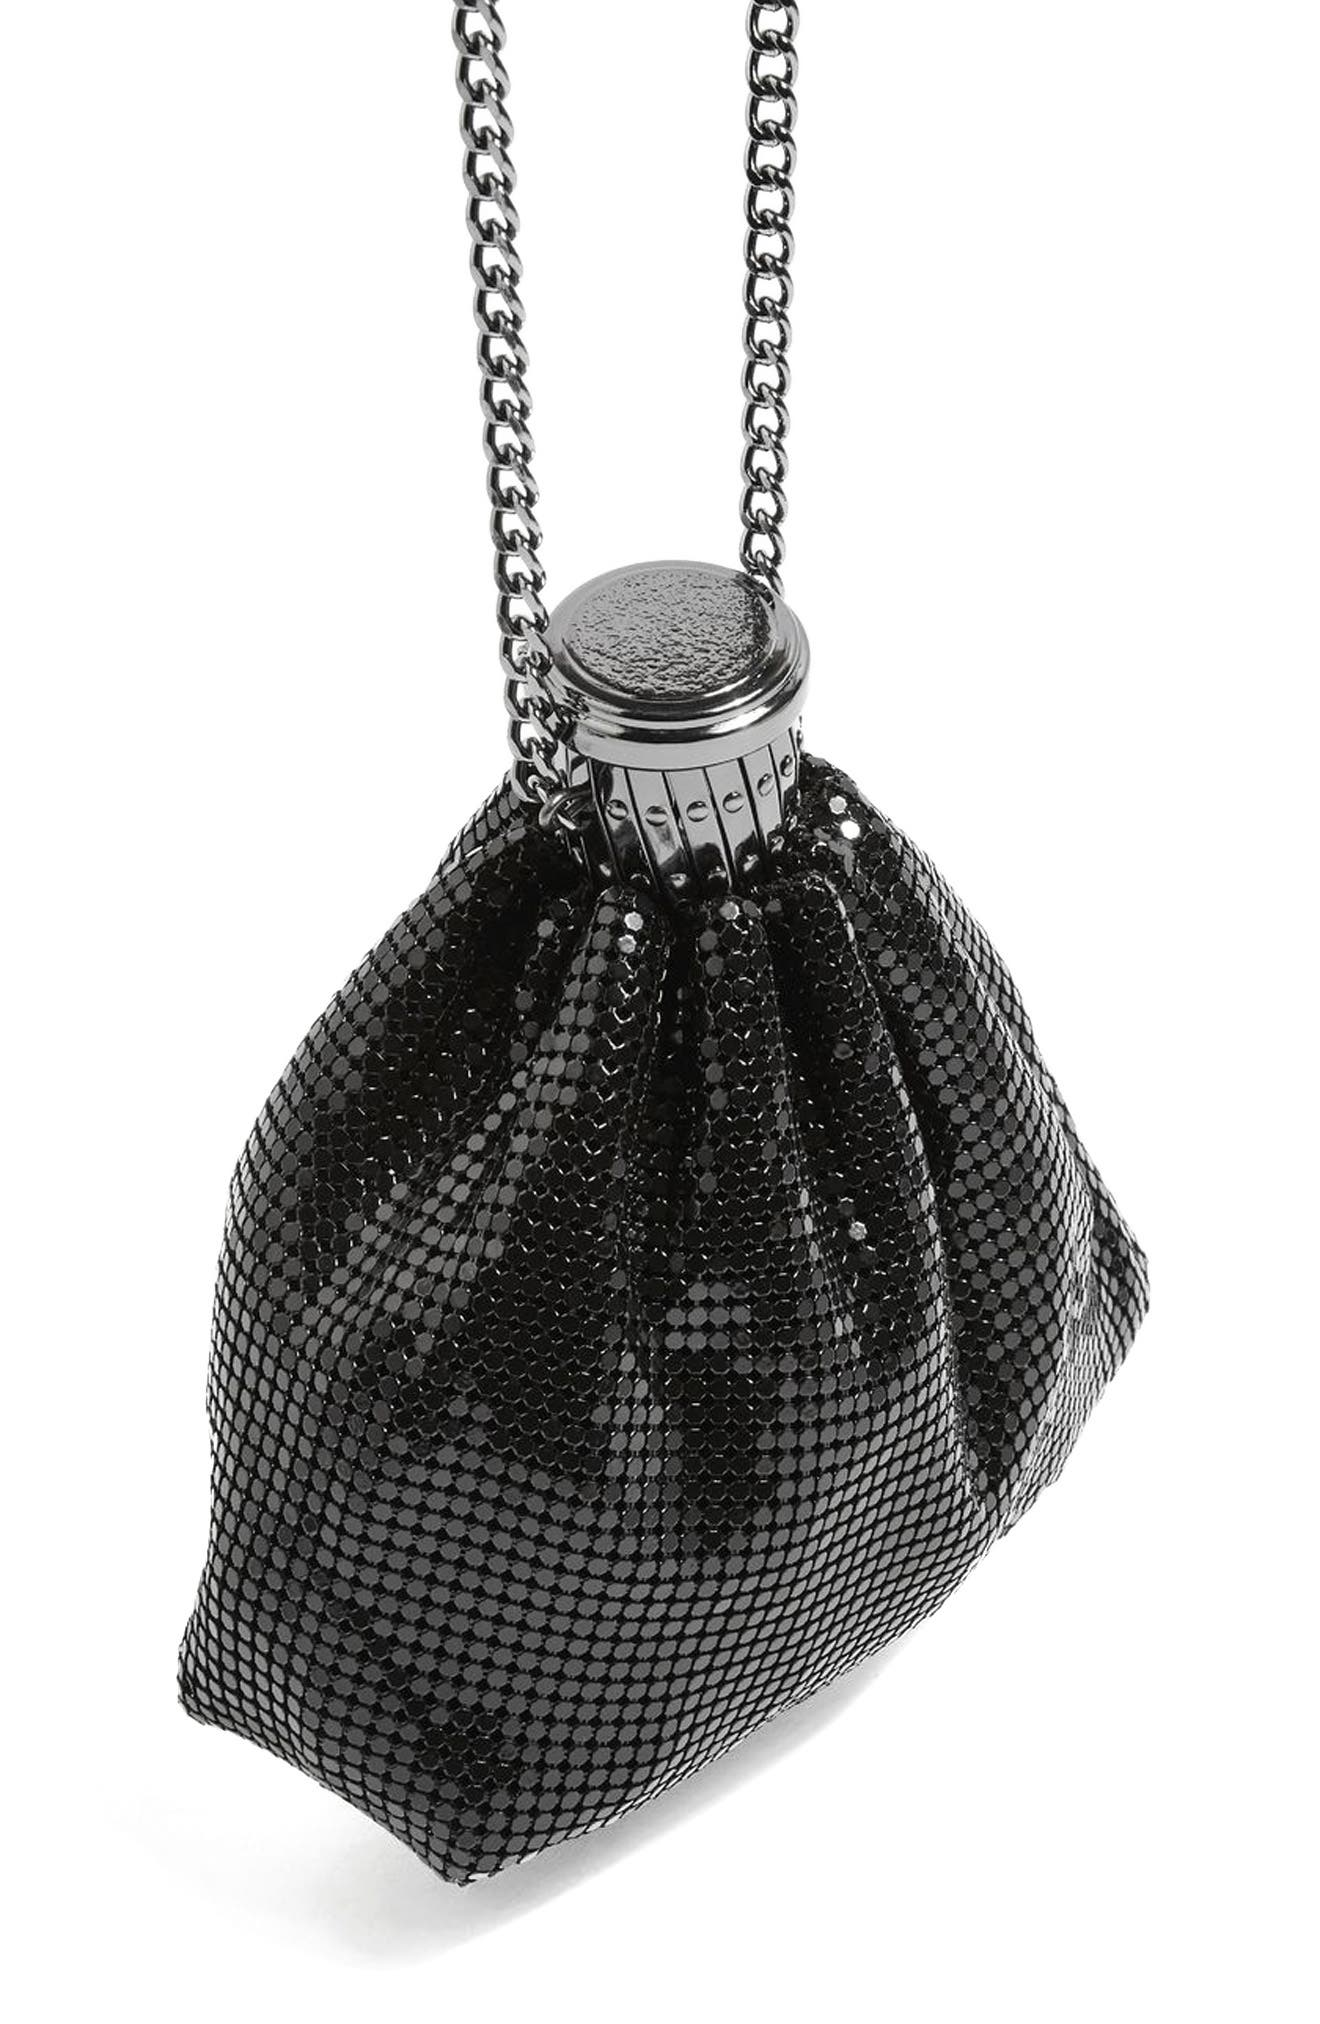 Chain Mail Pouch Crossbody Bag,                             Main thumbnail 1, color,                             040